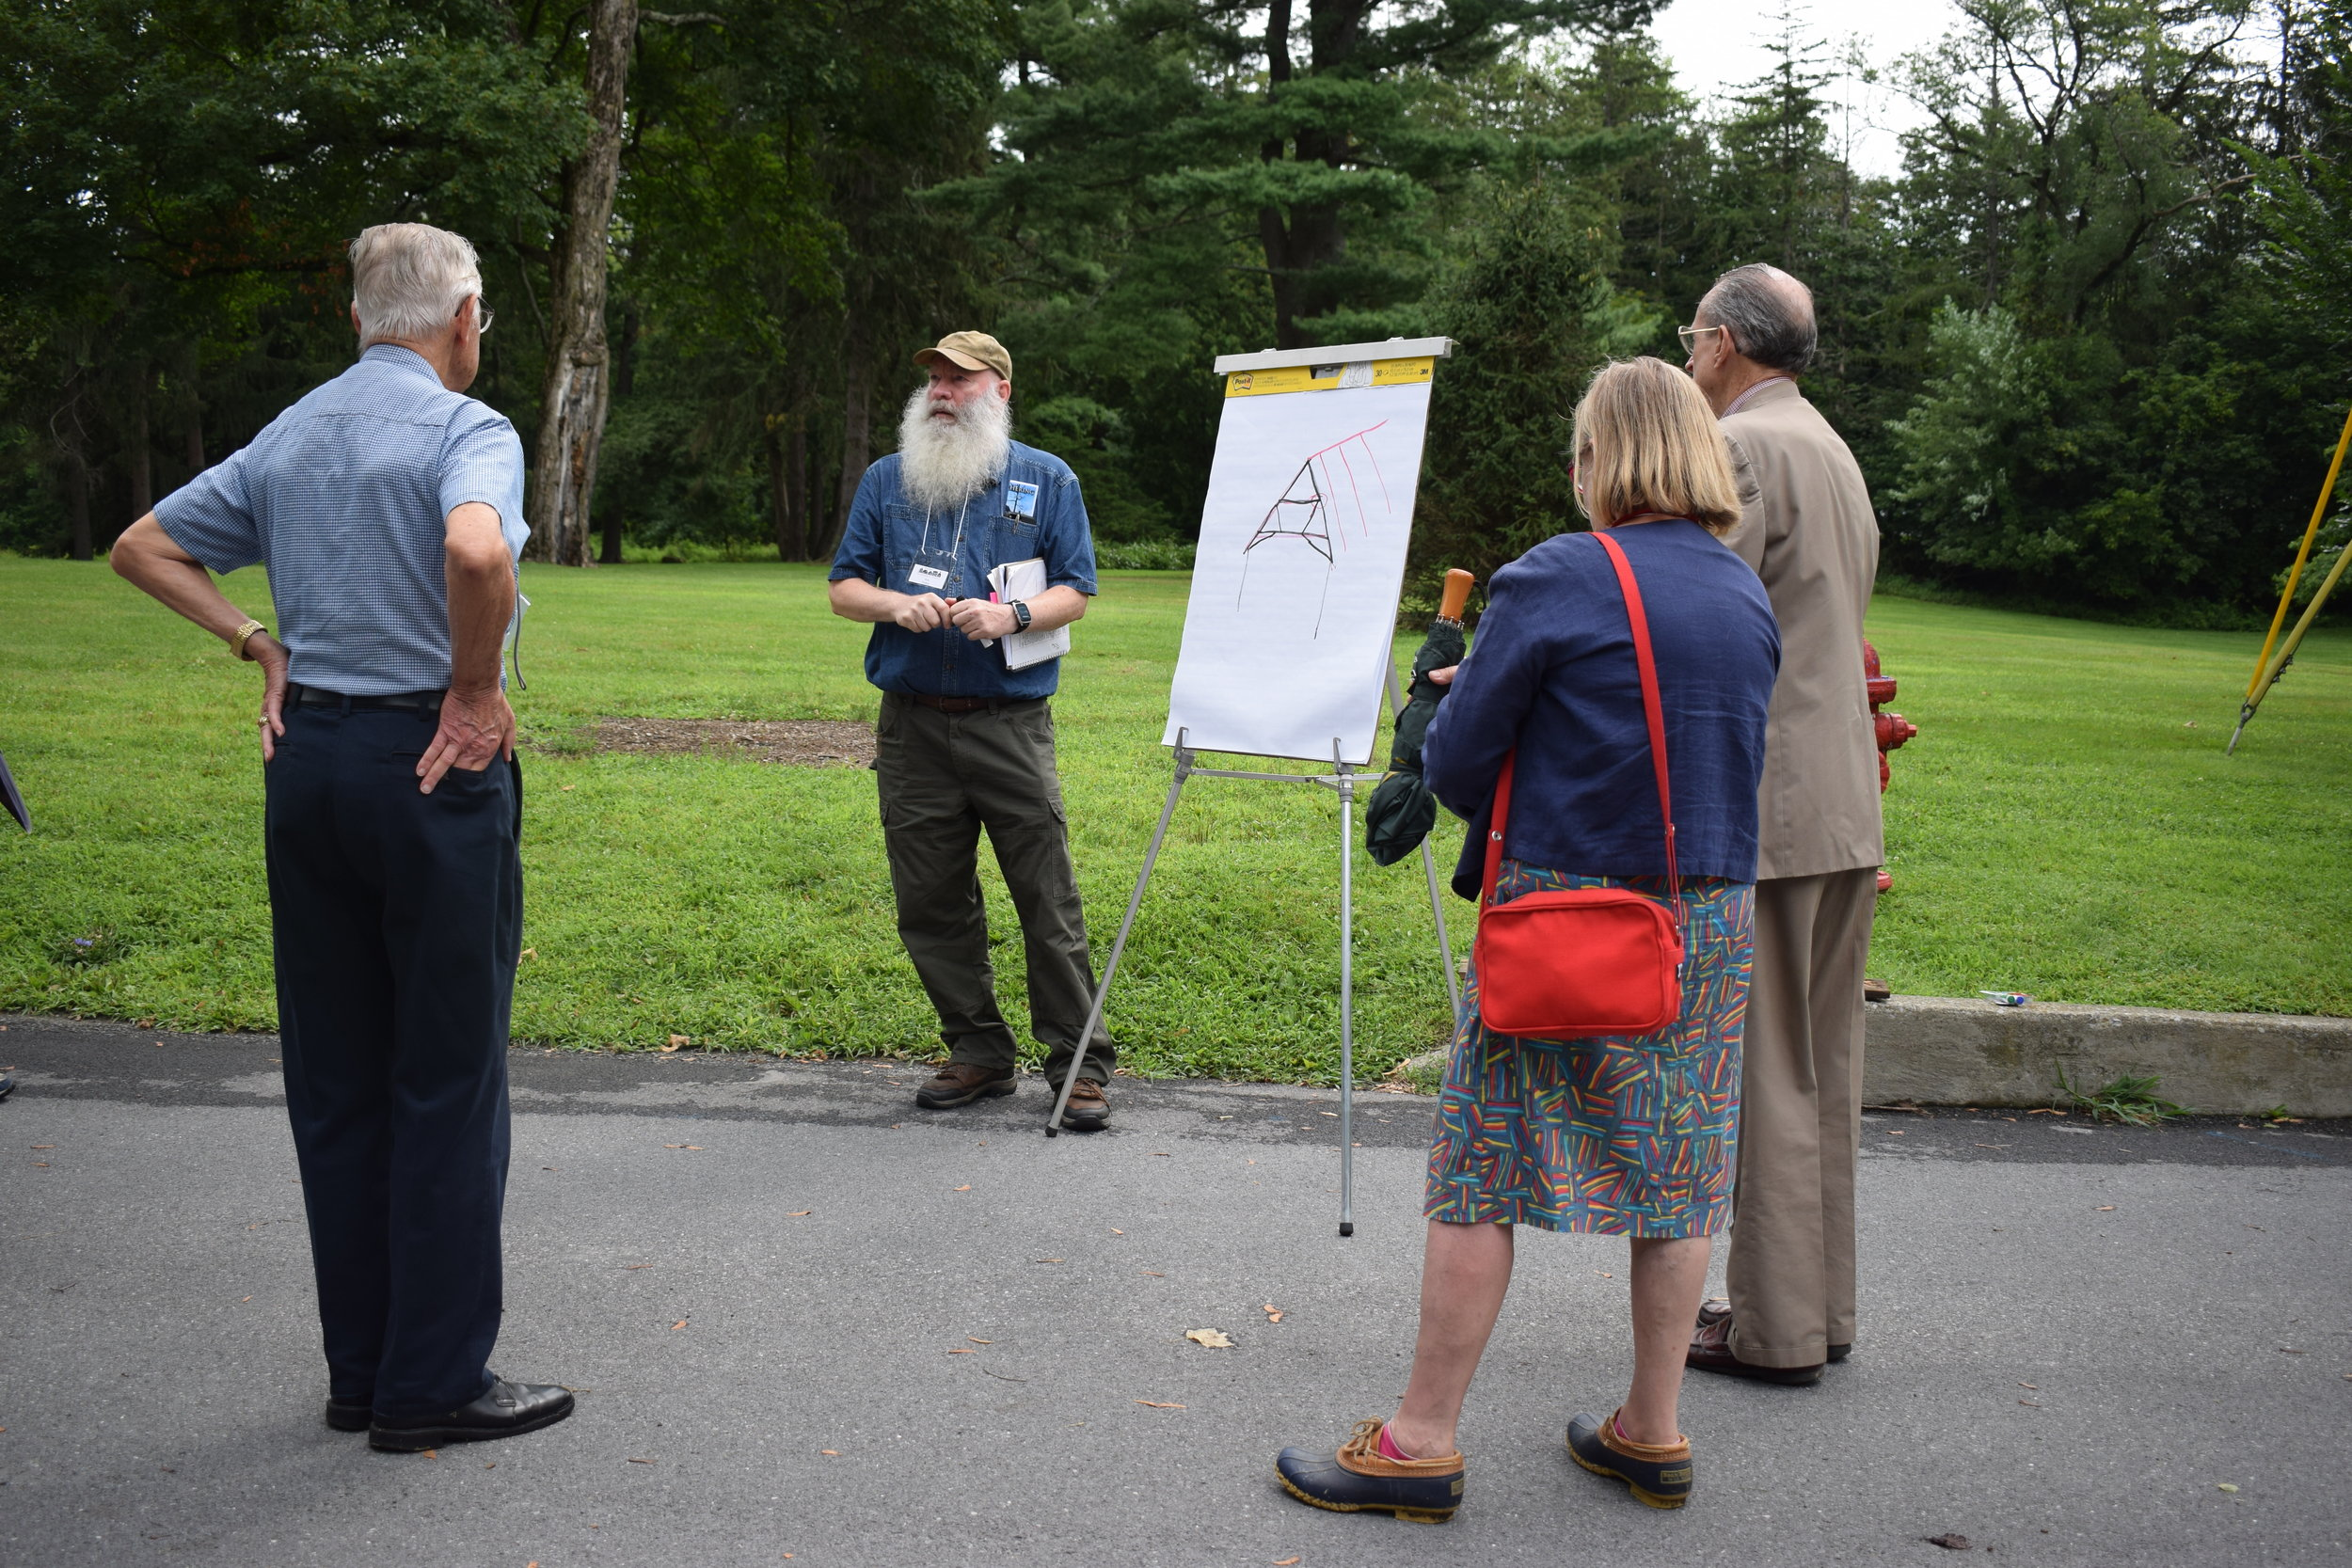 Project Manager Ken Follett leads a special preservation tour exploring the Jean Hasbrouck House roof restoration project